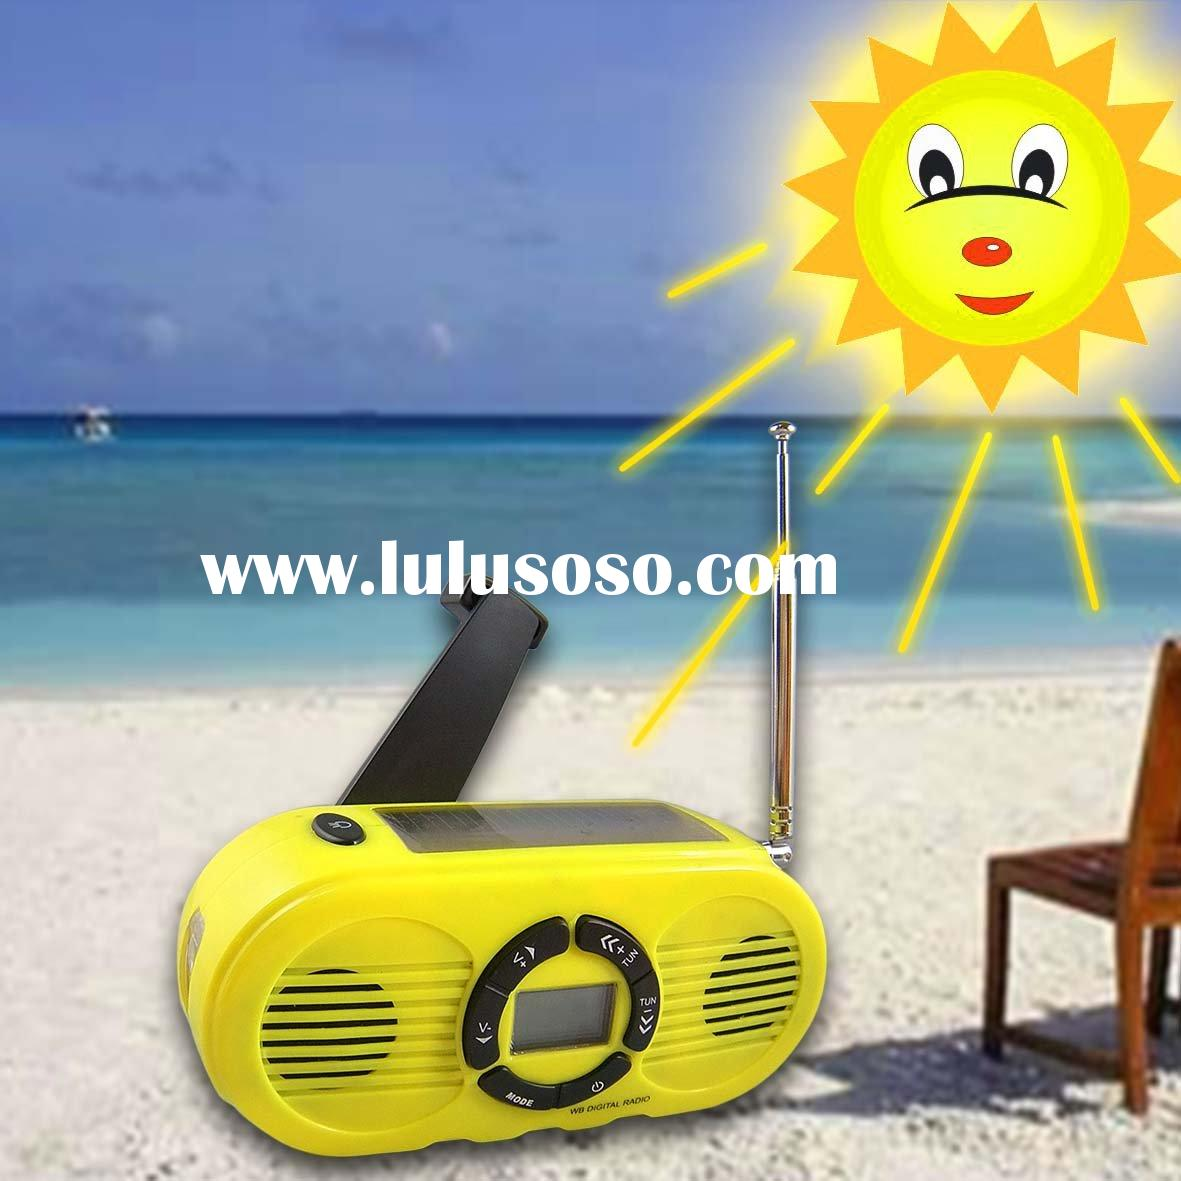 Solar Radio with Mobile phone charger